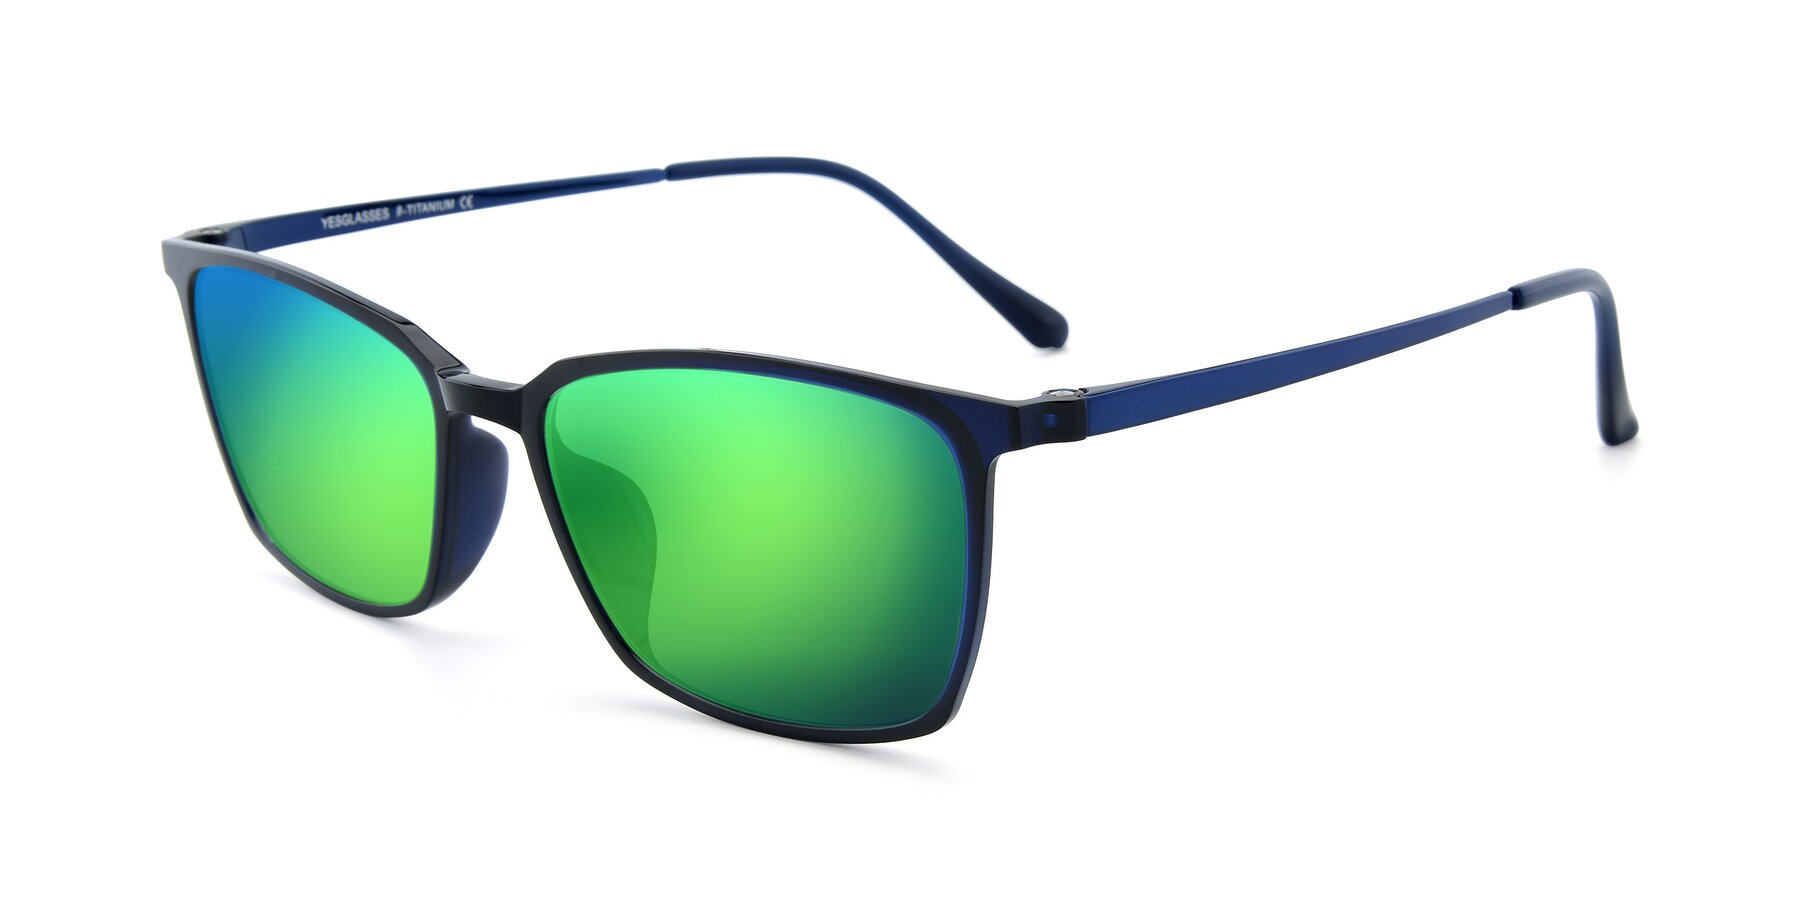 Angle of XC-5009 in Blue with Green Mirrored Lenses